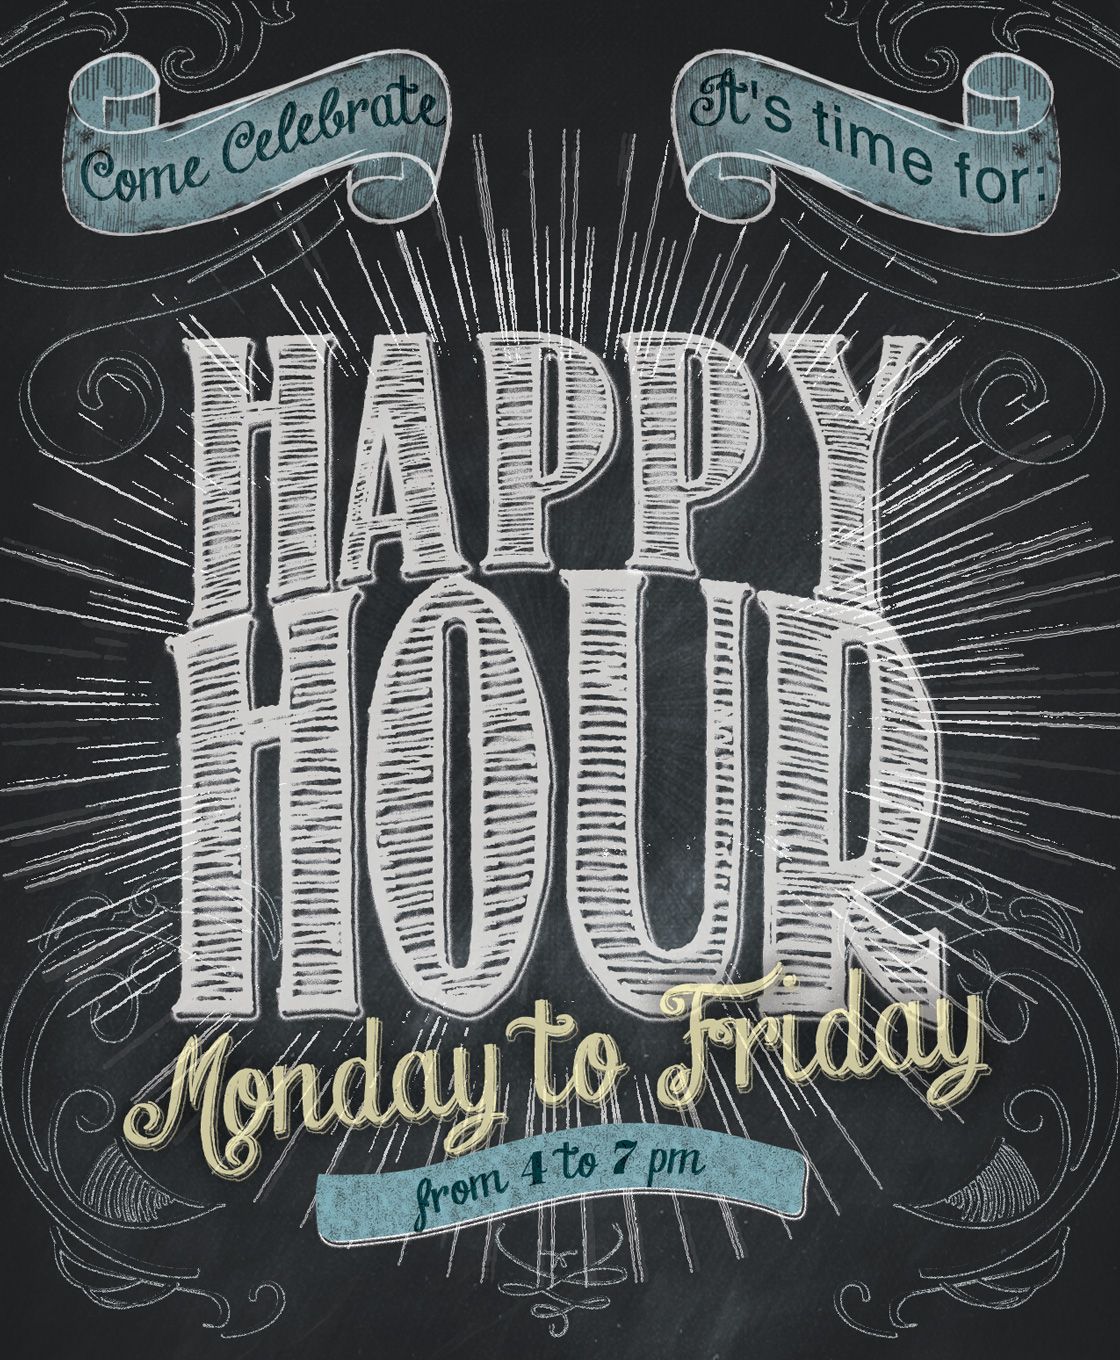 Meet Us For Happy Hour Monday